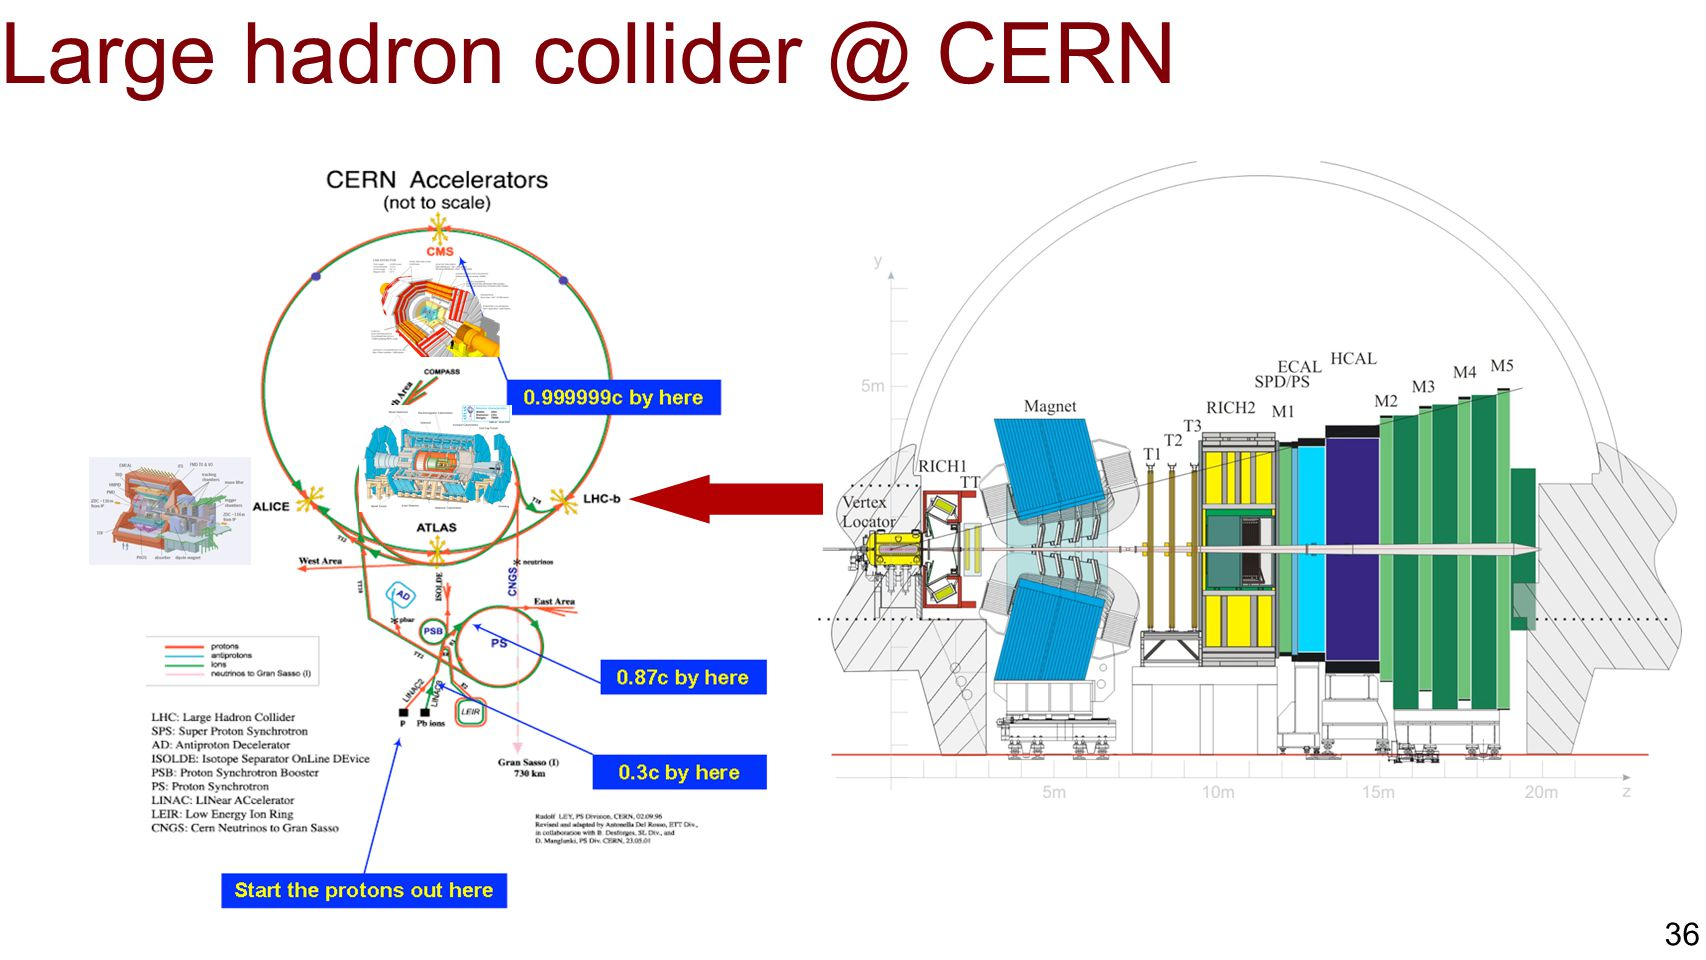 Large hadron collider @ CERN